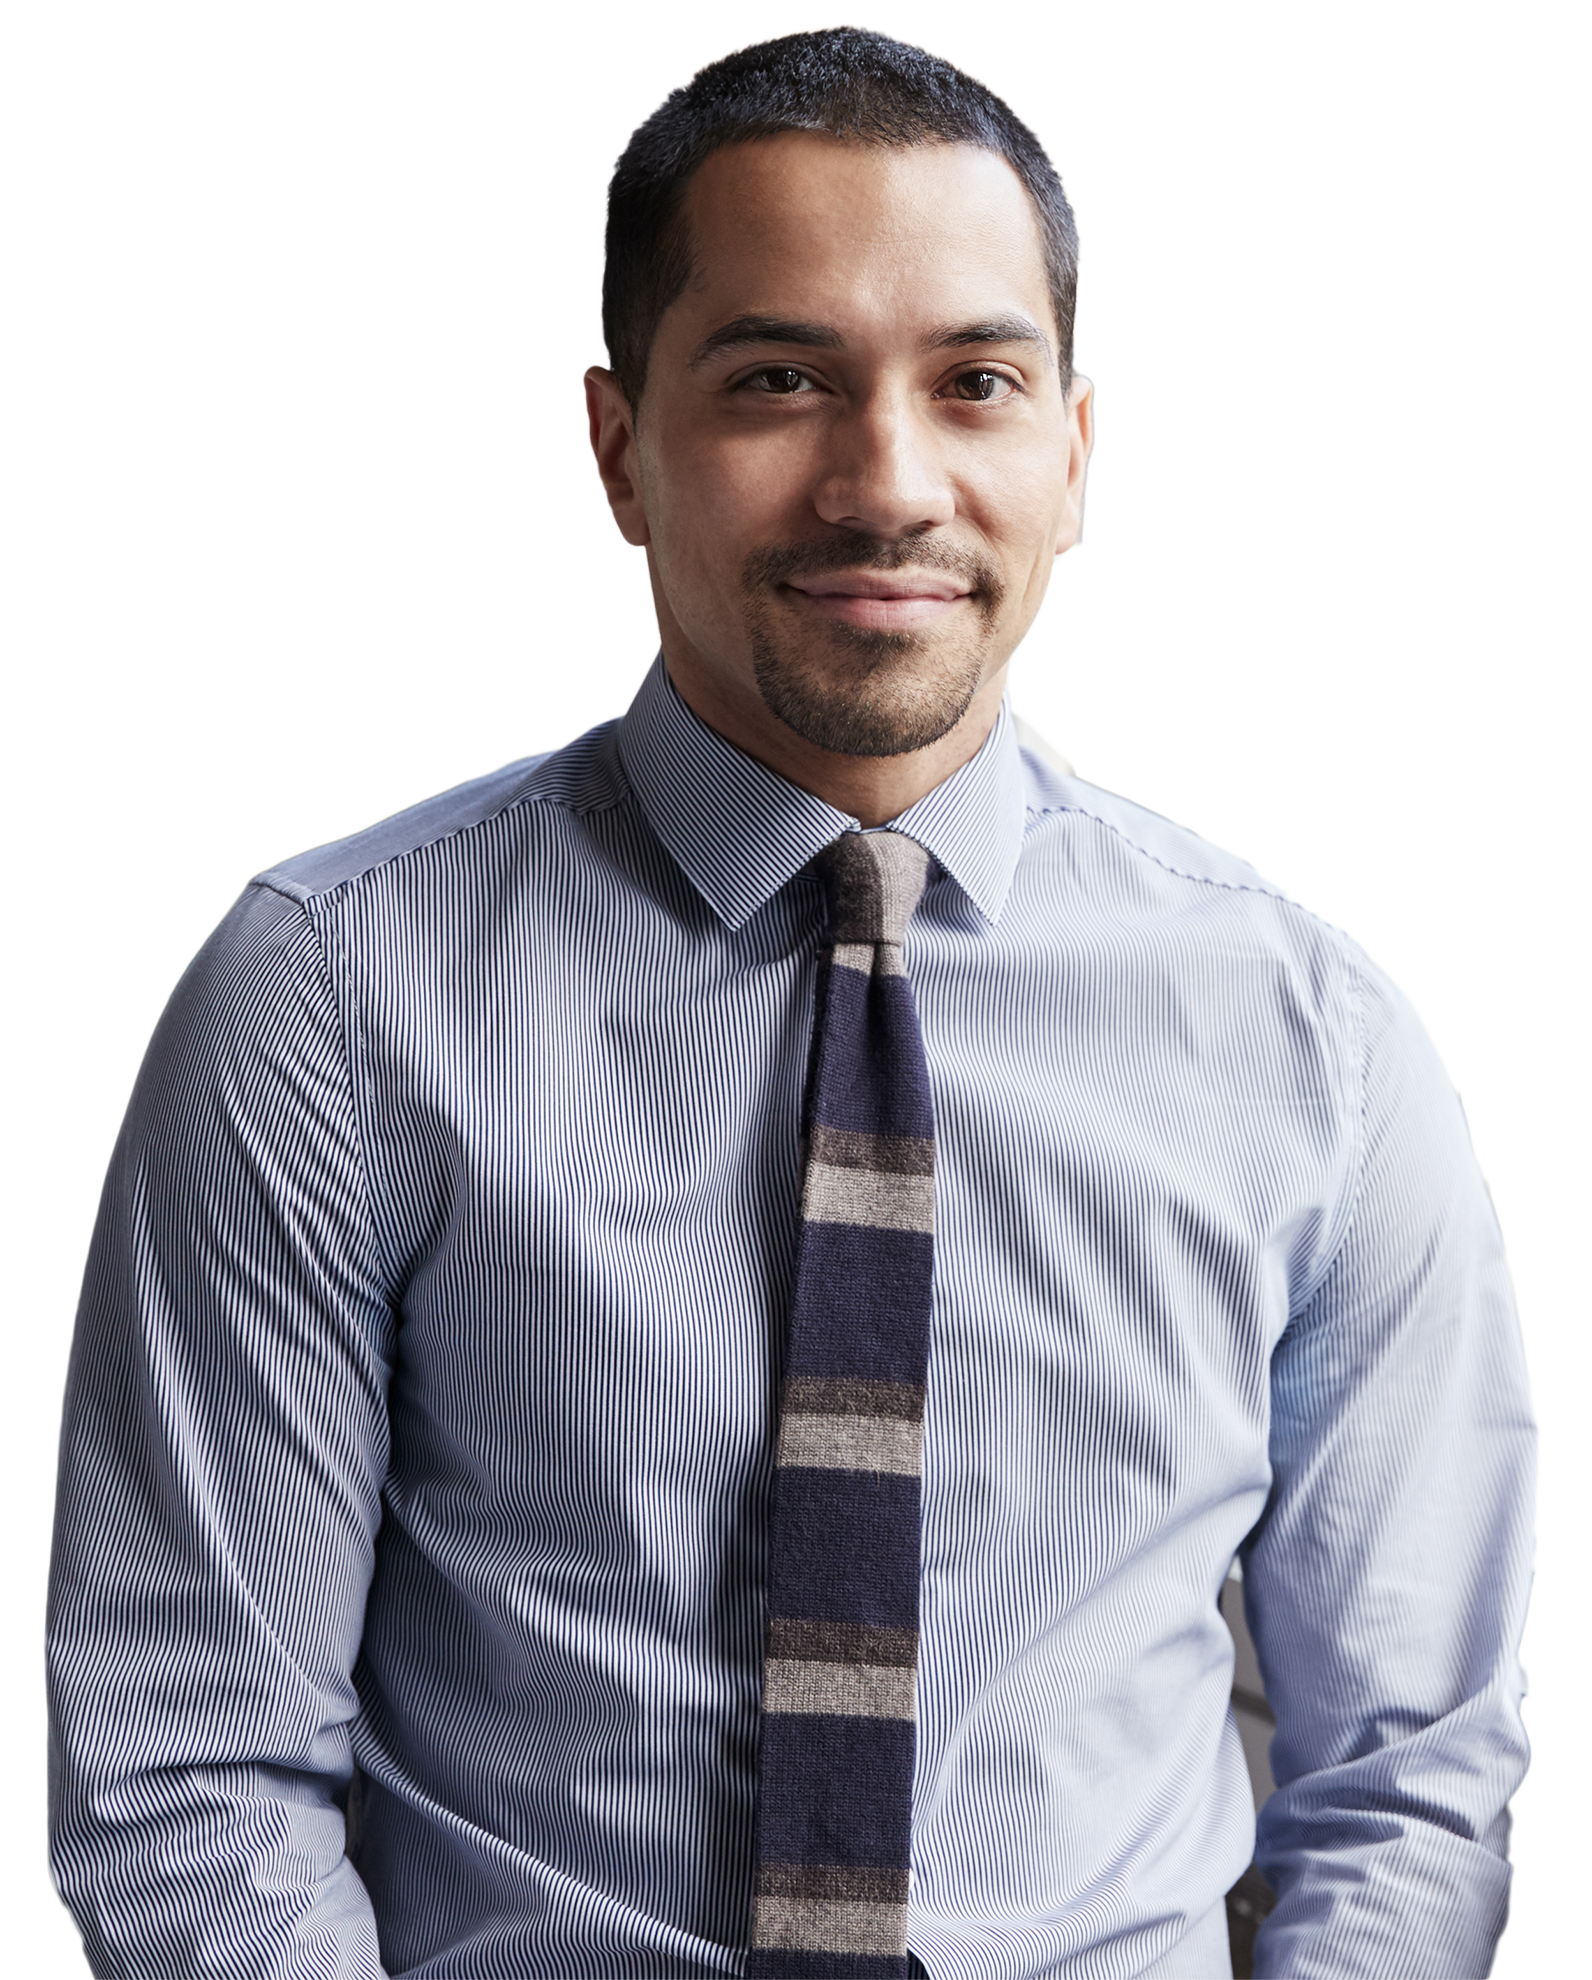 young-hispanic-business-man-smiling-to-camera-PGJV4CK